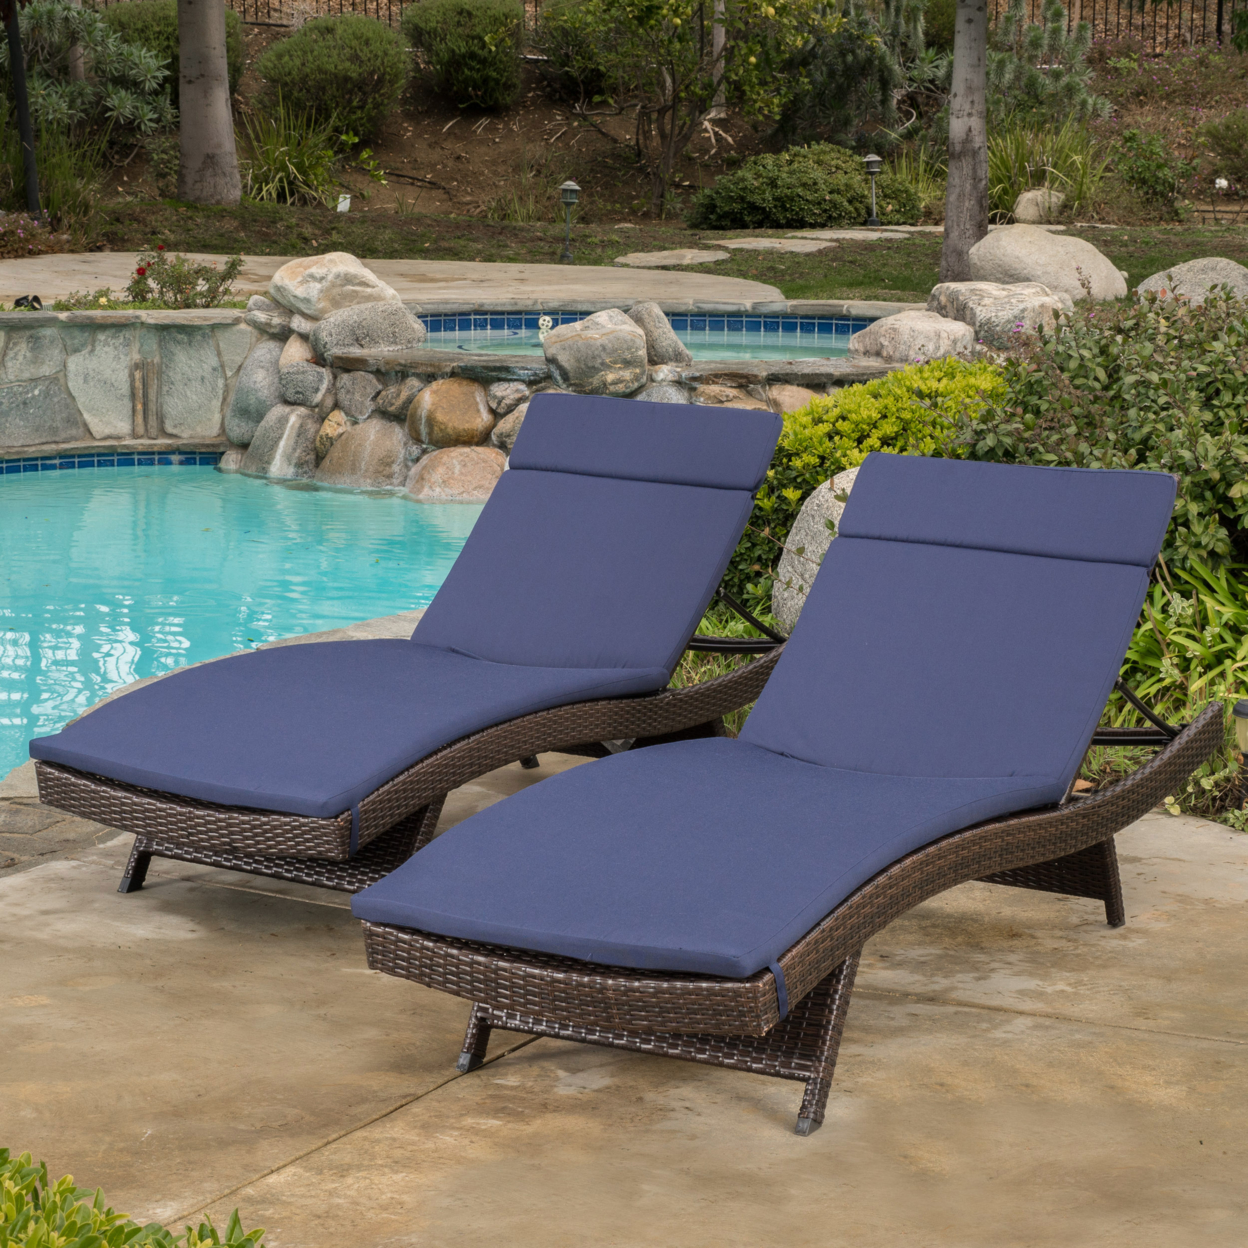 Lakeport Outdoor Adjustable Chaise Lounge Chairs w/ Cushions (set of 2)